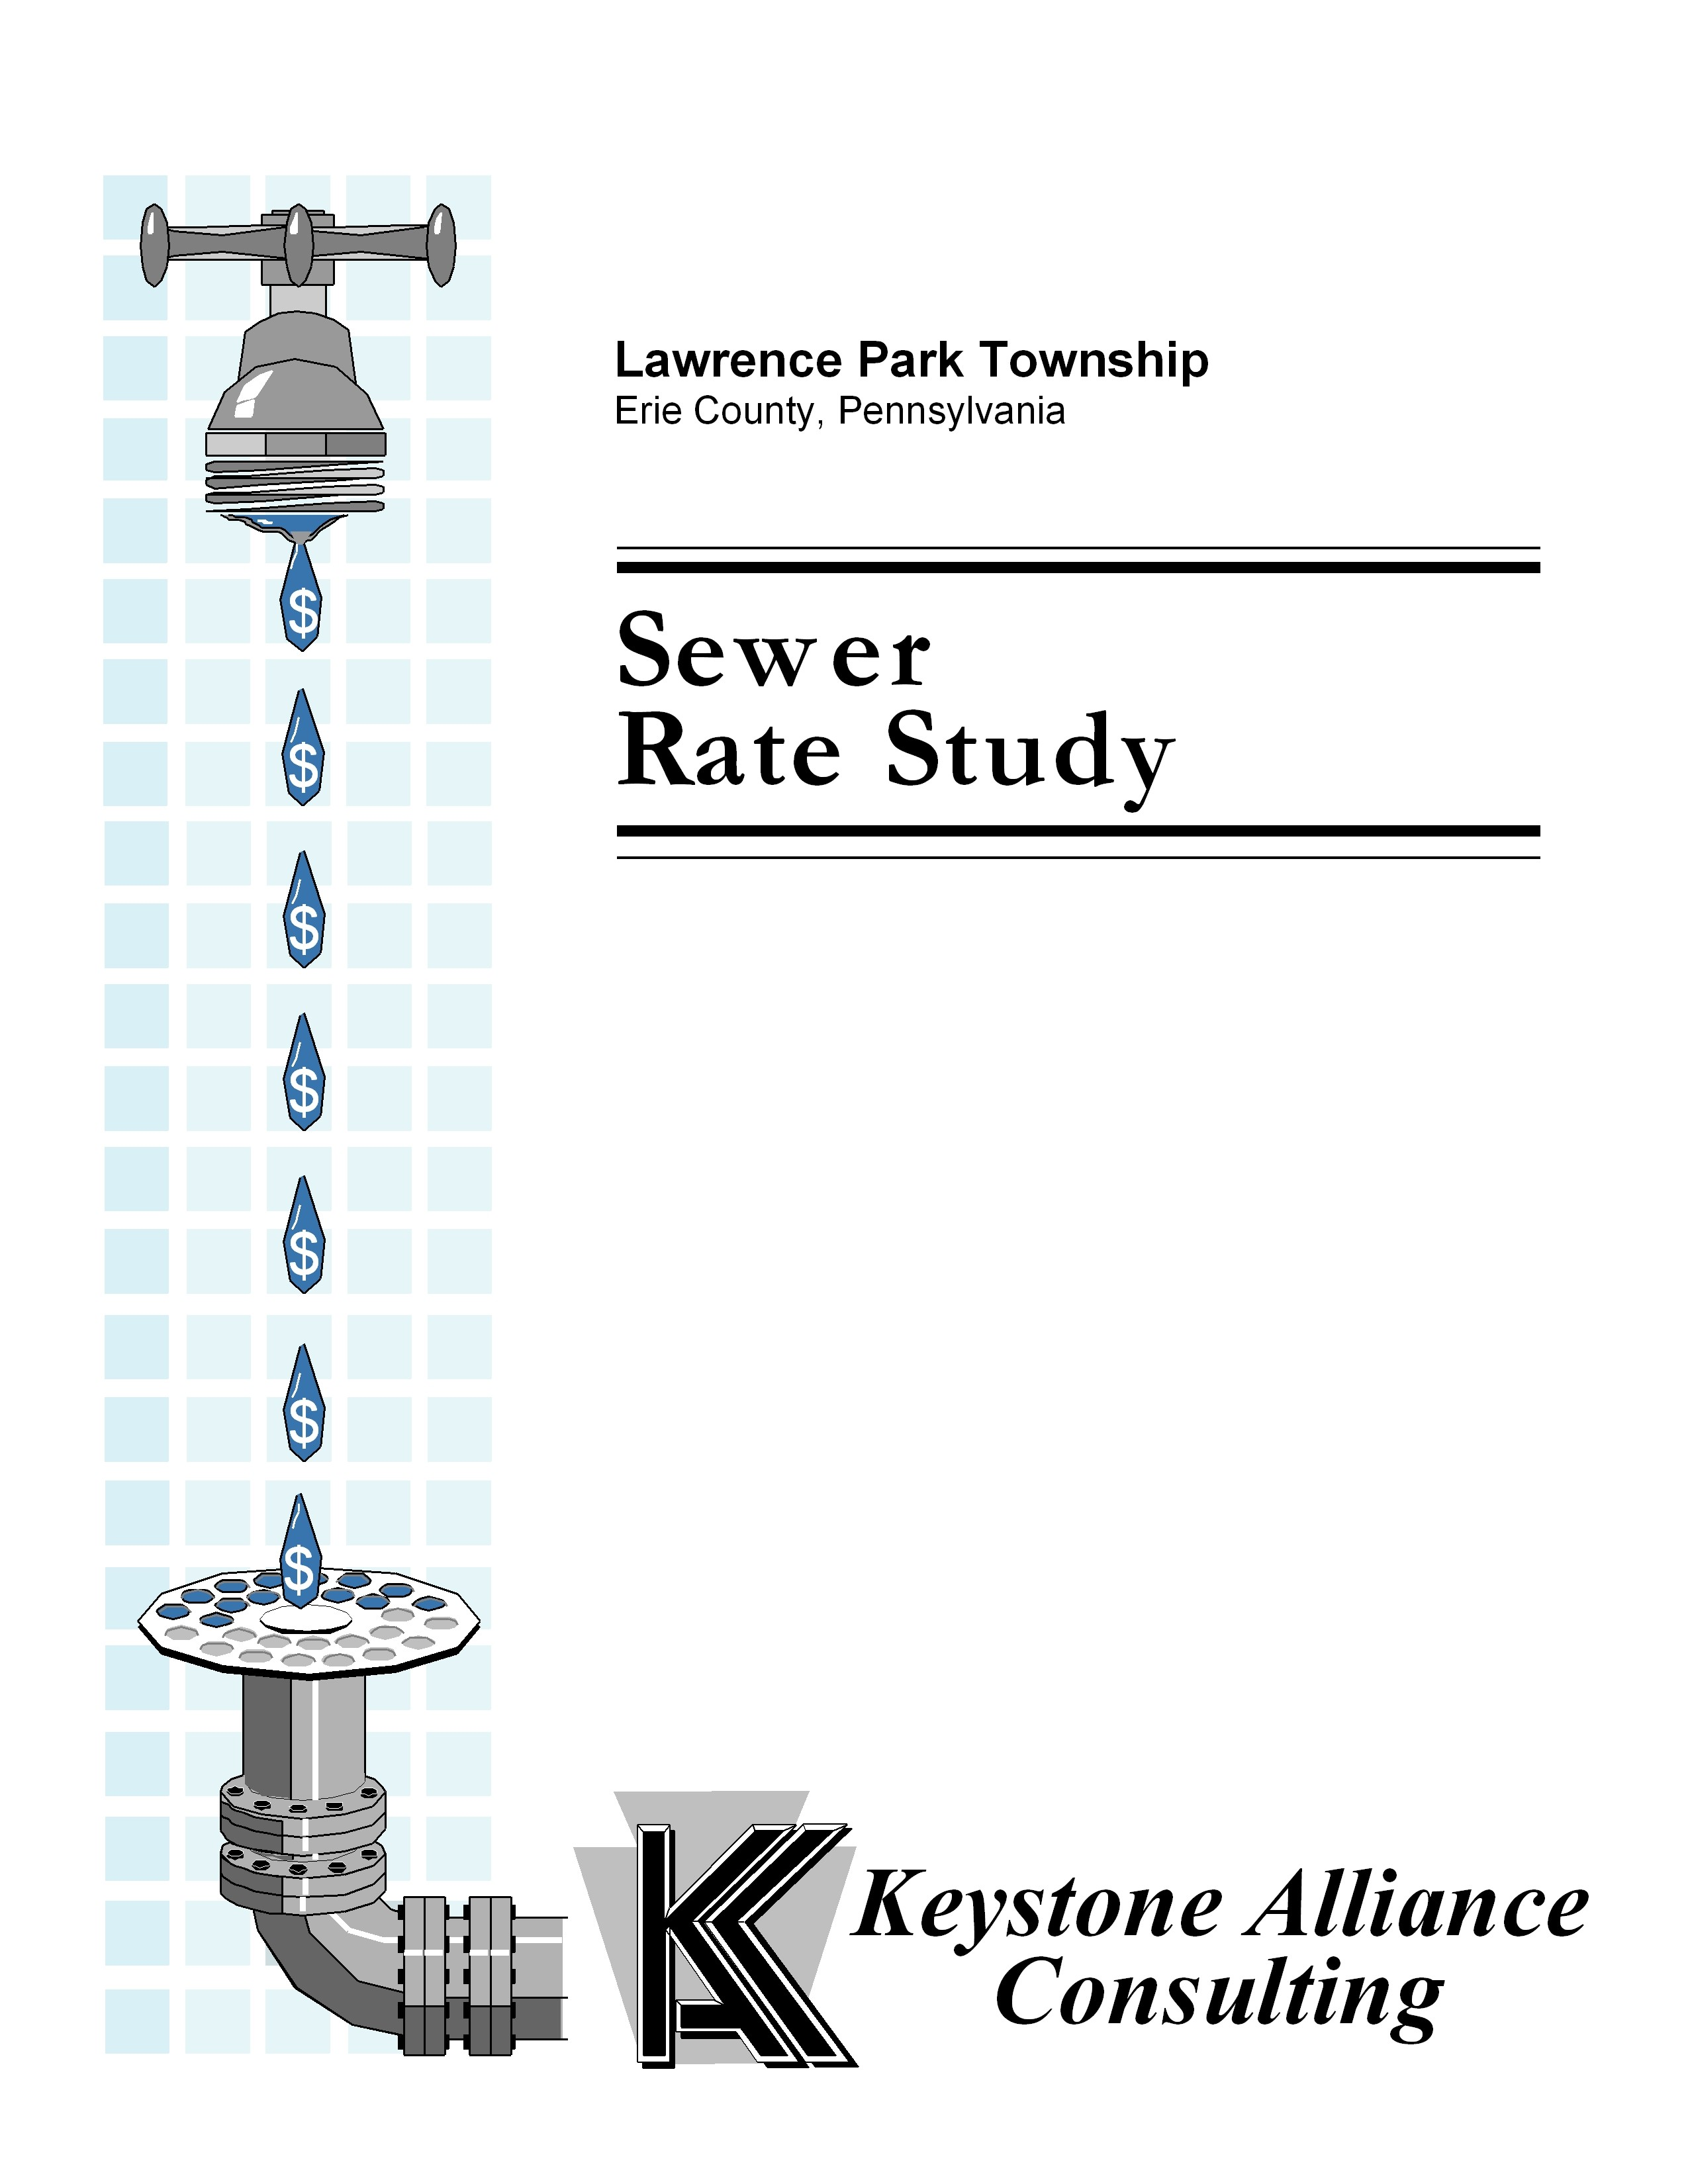 Lawrence Park Township Sewer System Rate Study